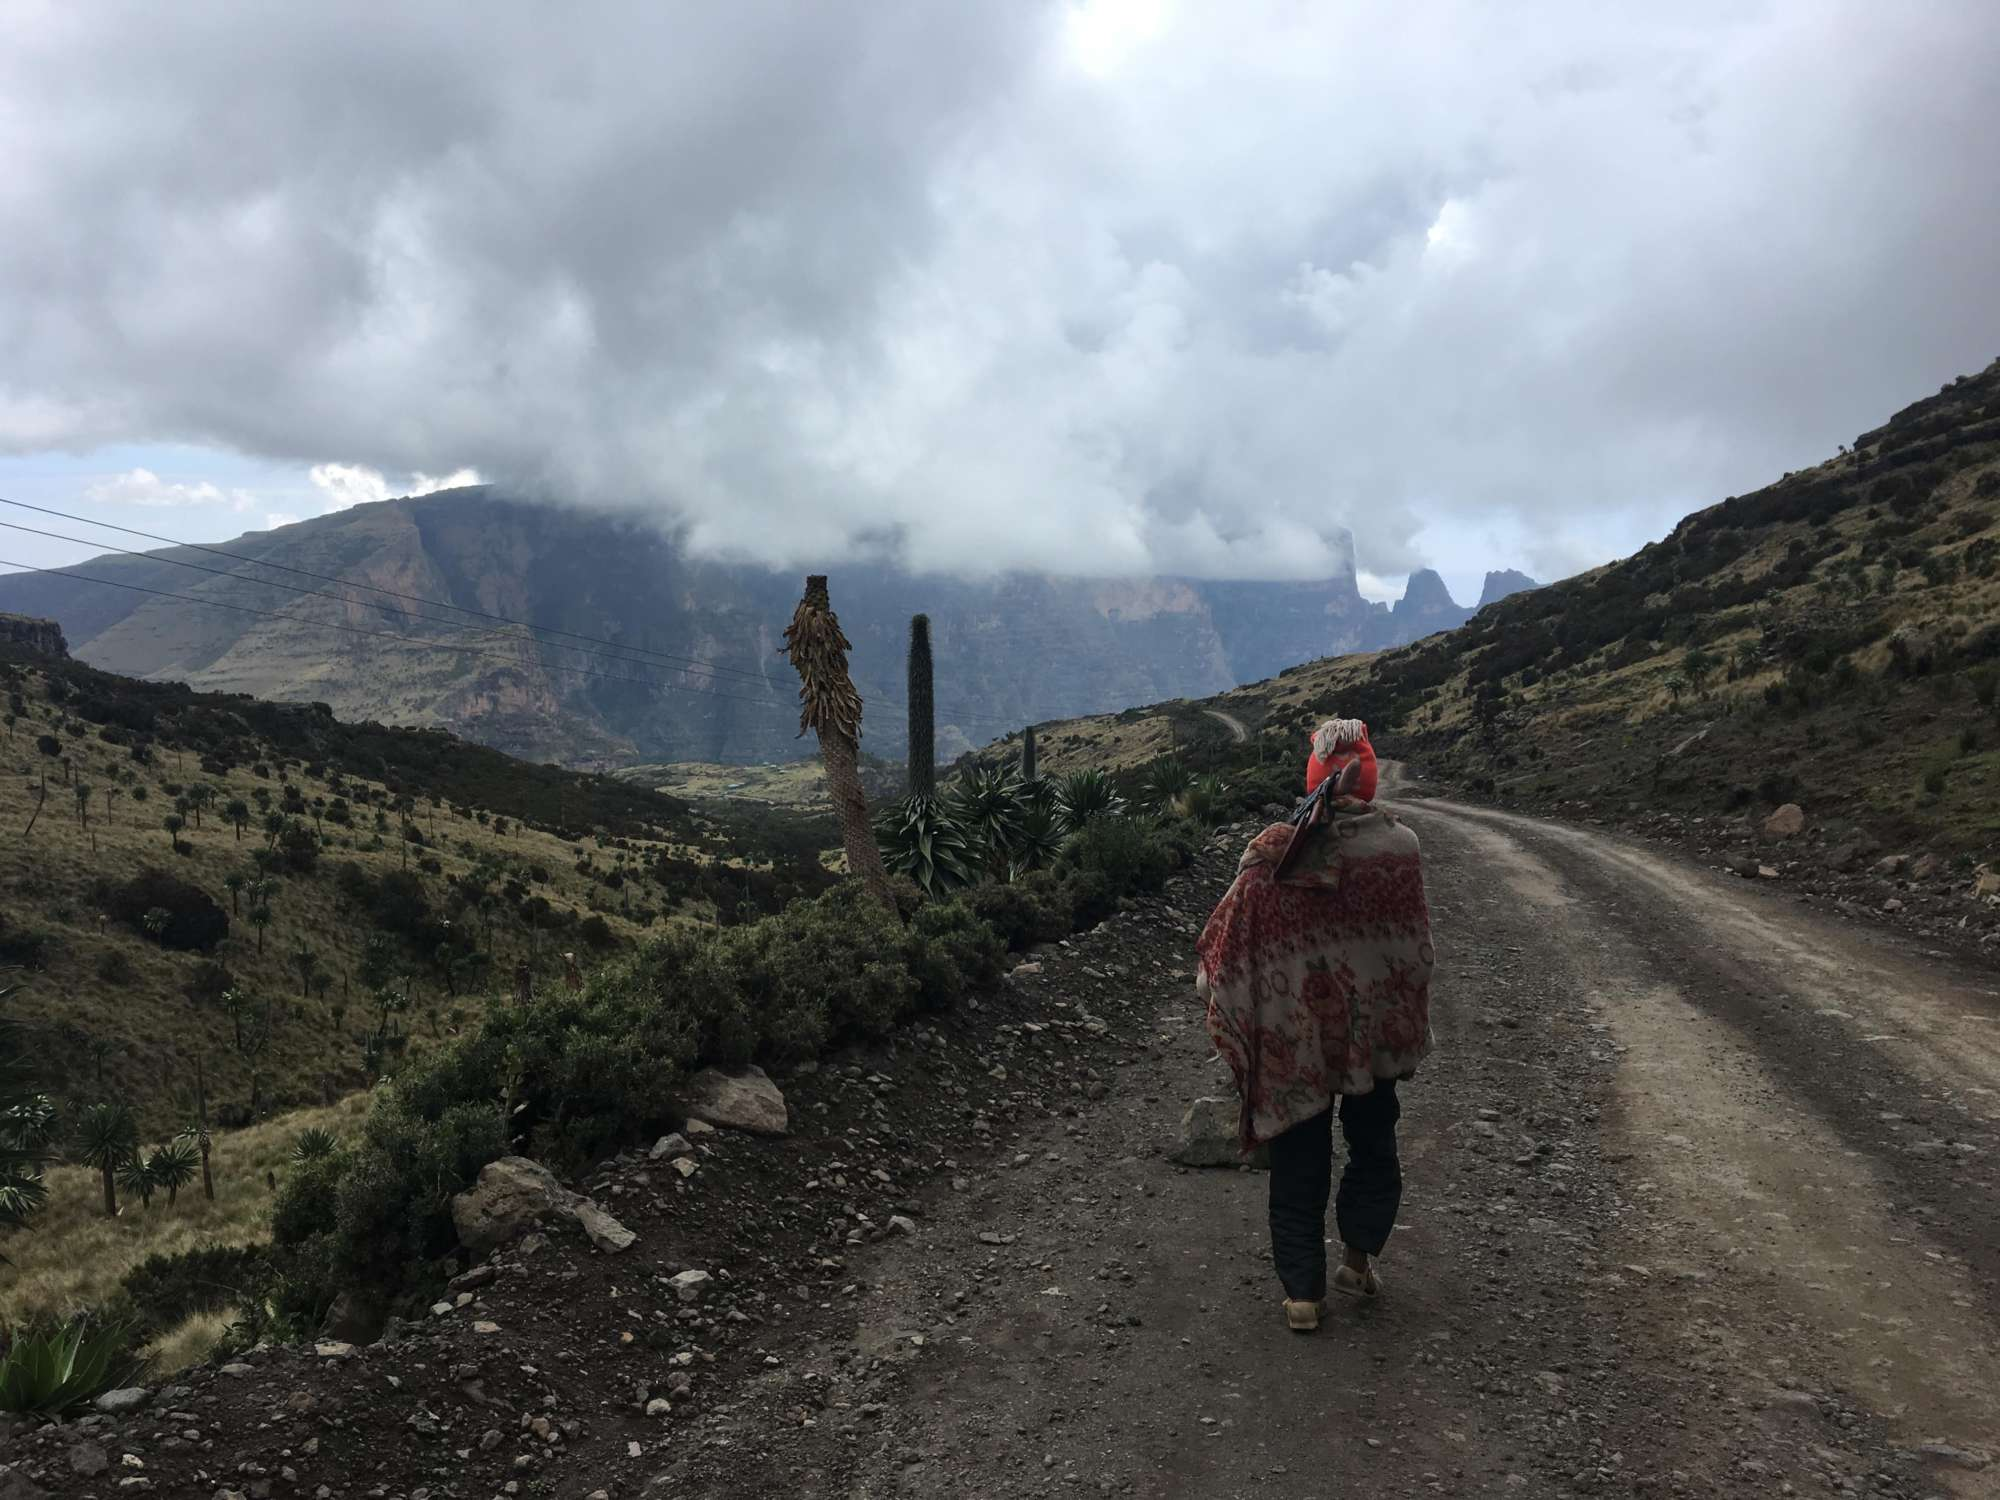 Trekking-Ethiopias-Simien-Mountains-Mafia-AK-47s-and-a-Park-at-Risk-scout-road-clouds